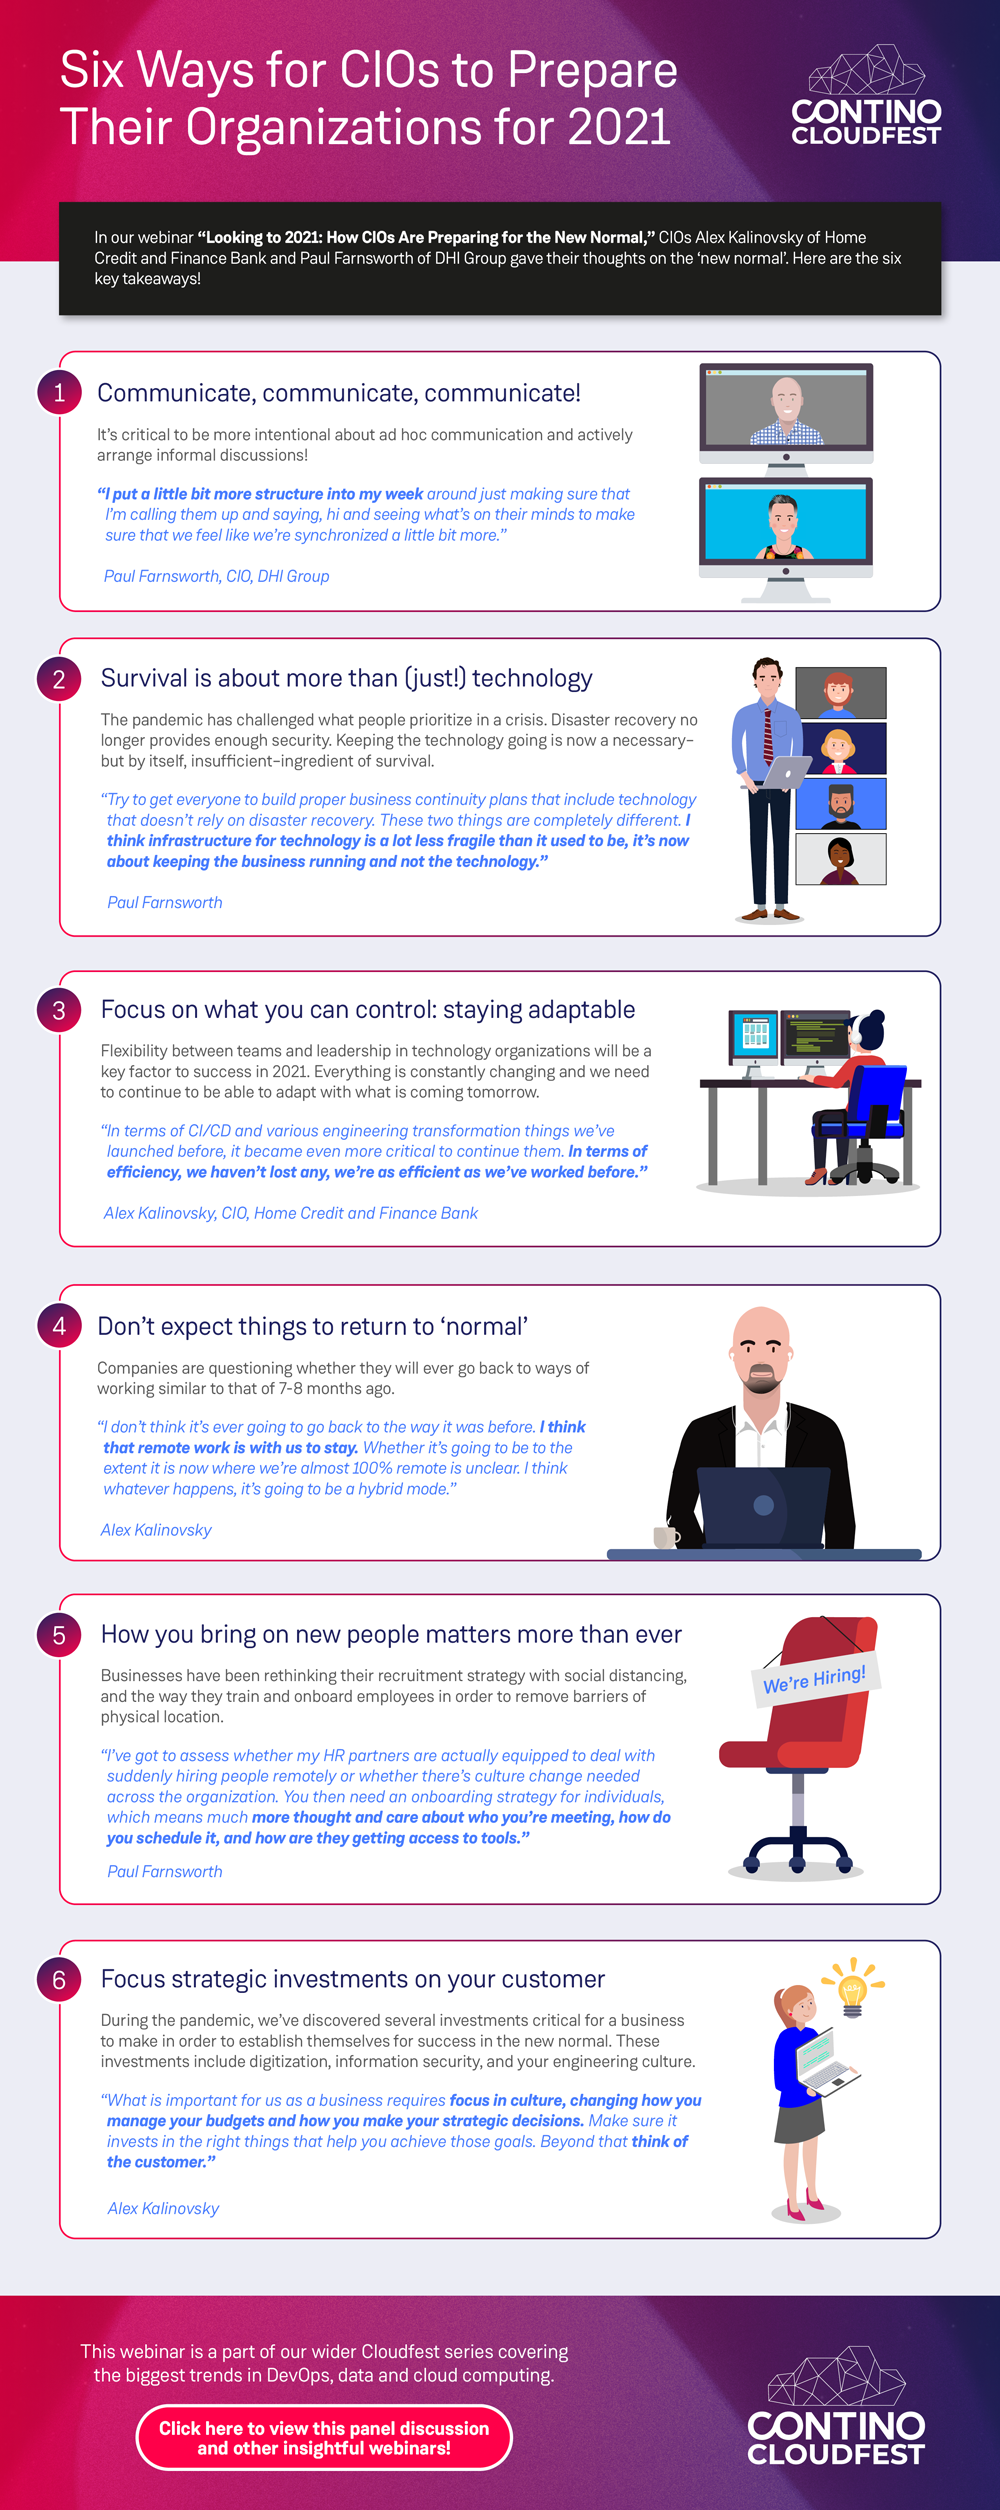 [Infographic] Six Ways CIOs Can Prepare Their Organizations for 2021